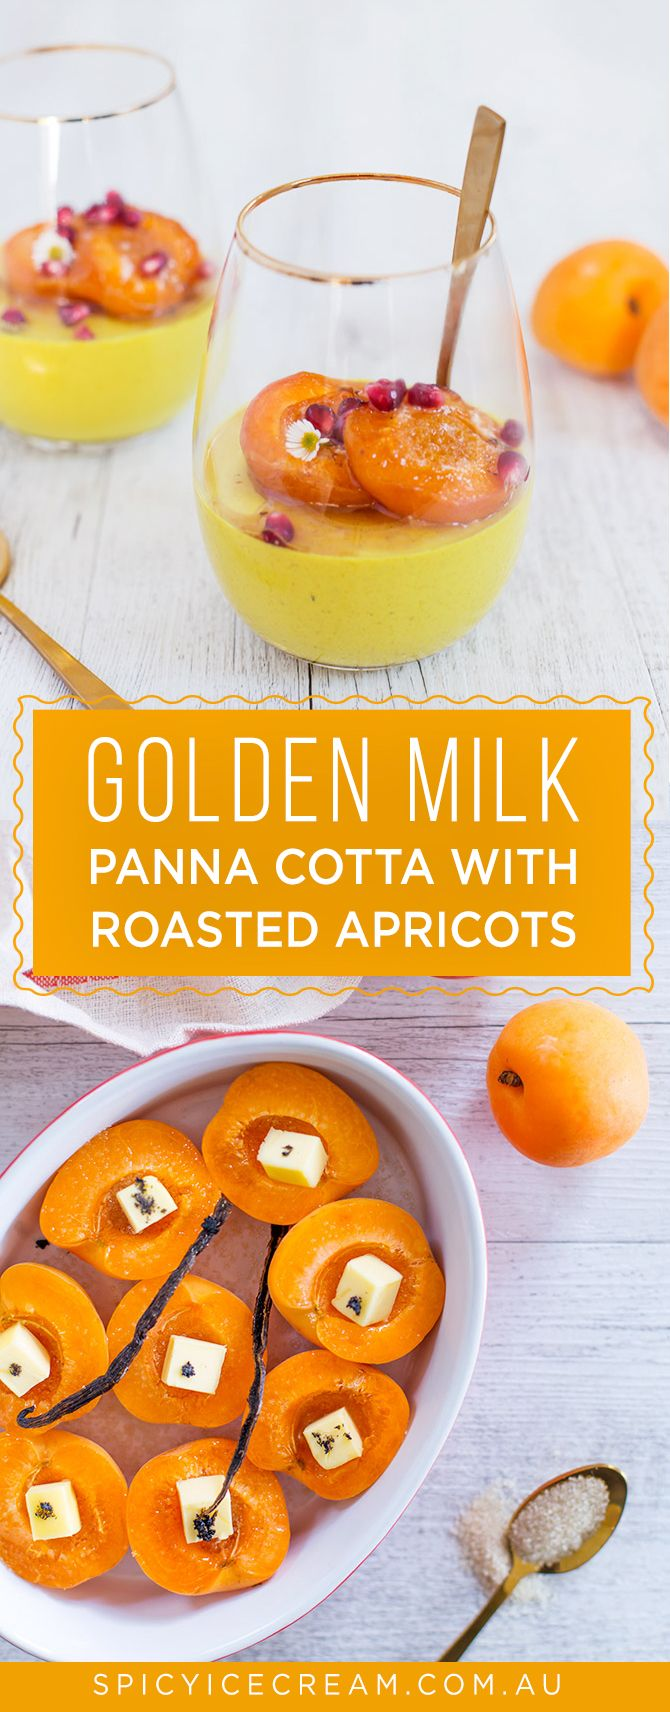 ... Panna Cotta on Pinterest | Cakes, Chocolate panna cotta and Mousse